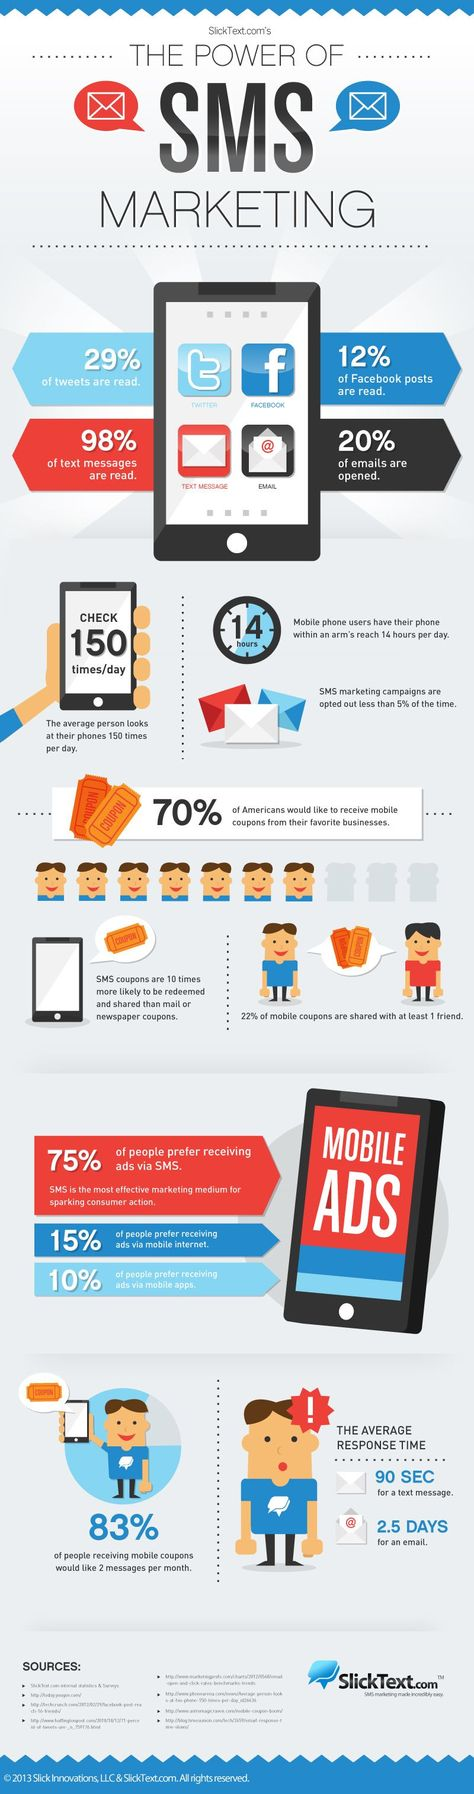 The Power Of SMS Marketing (Infographic)